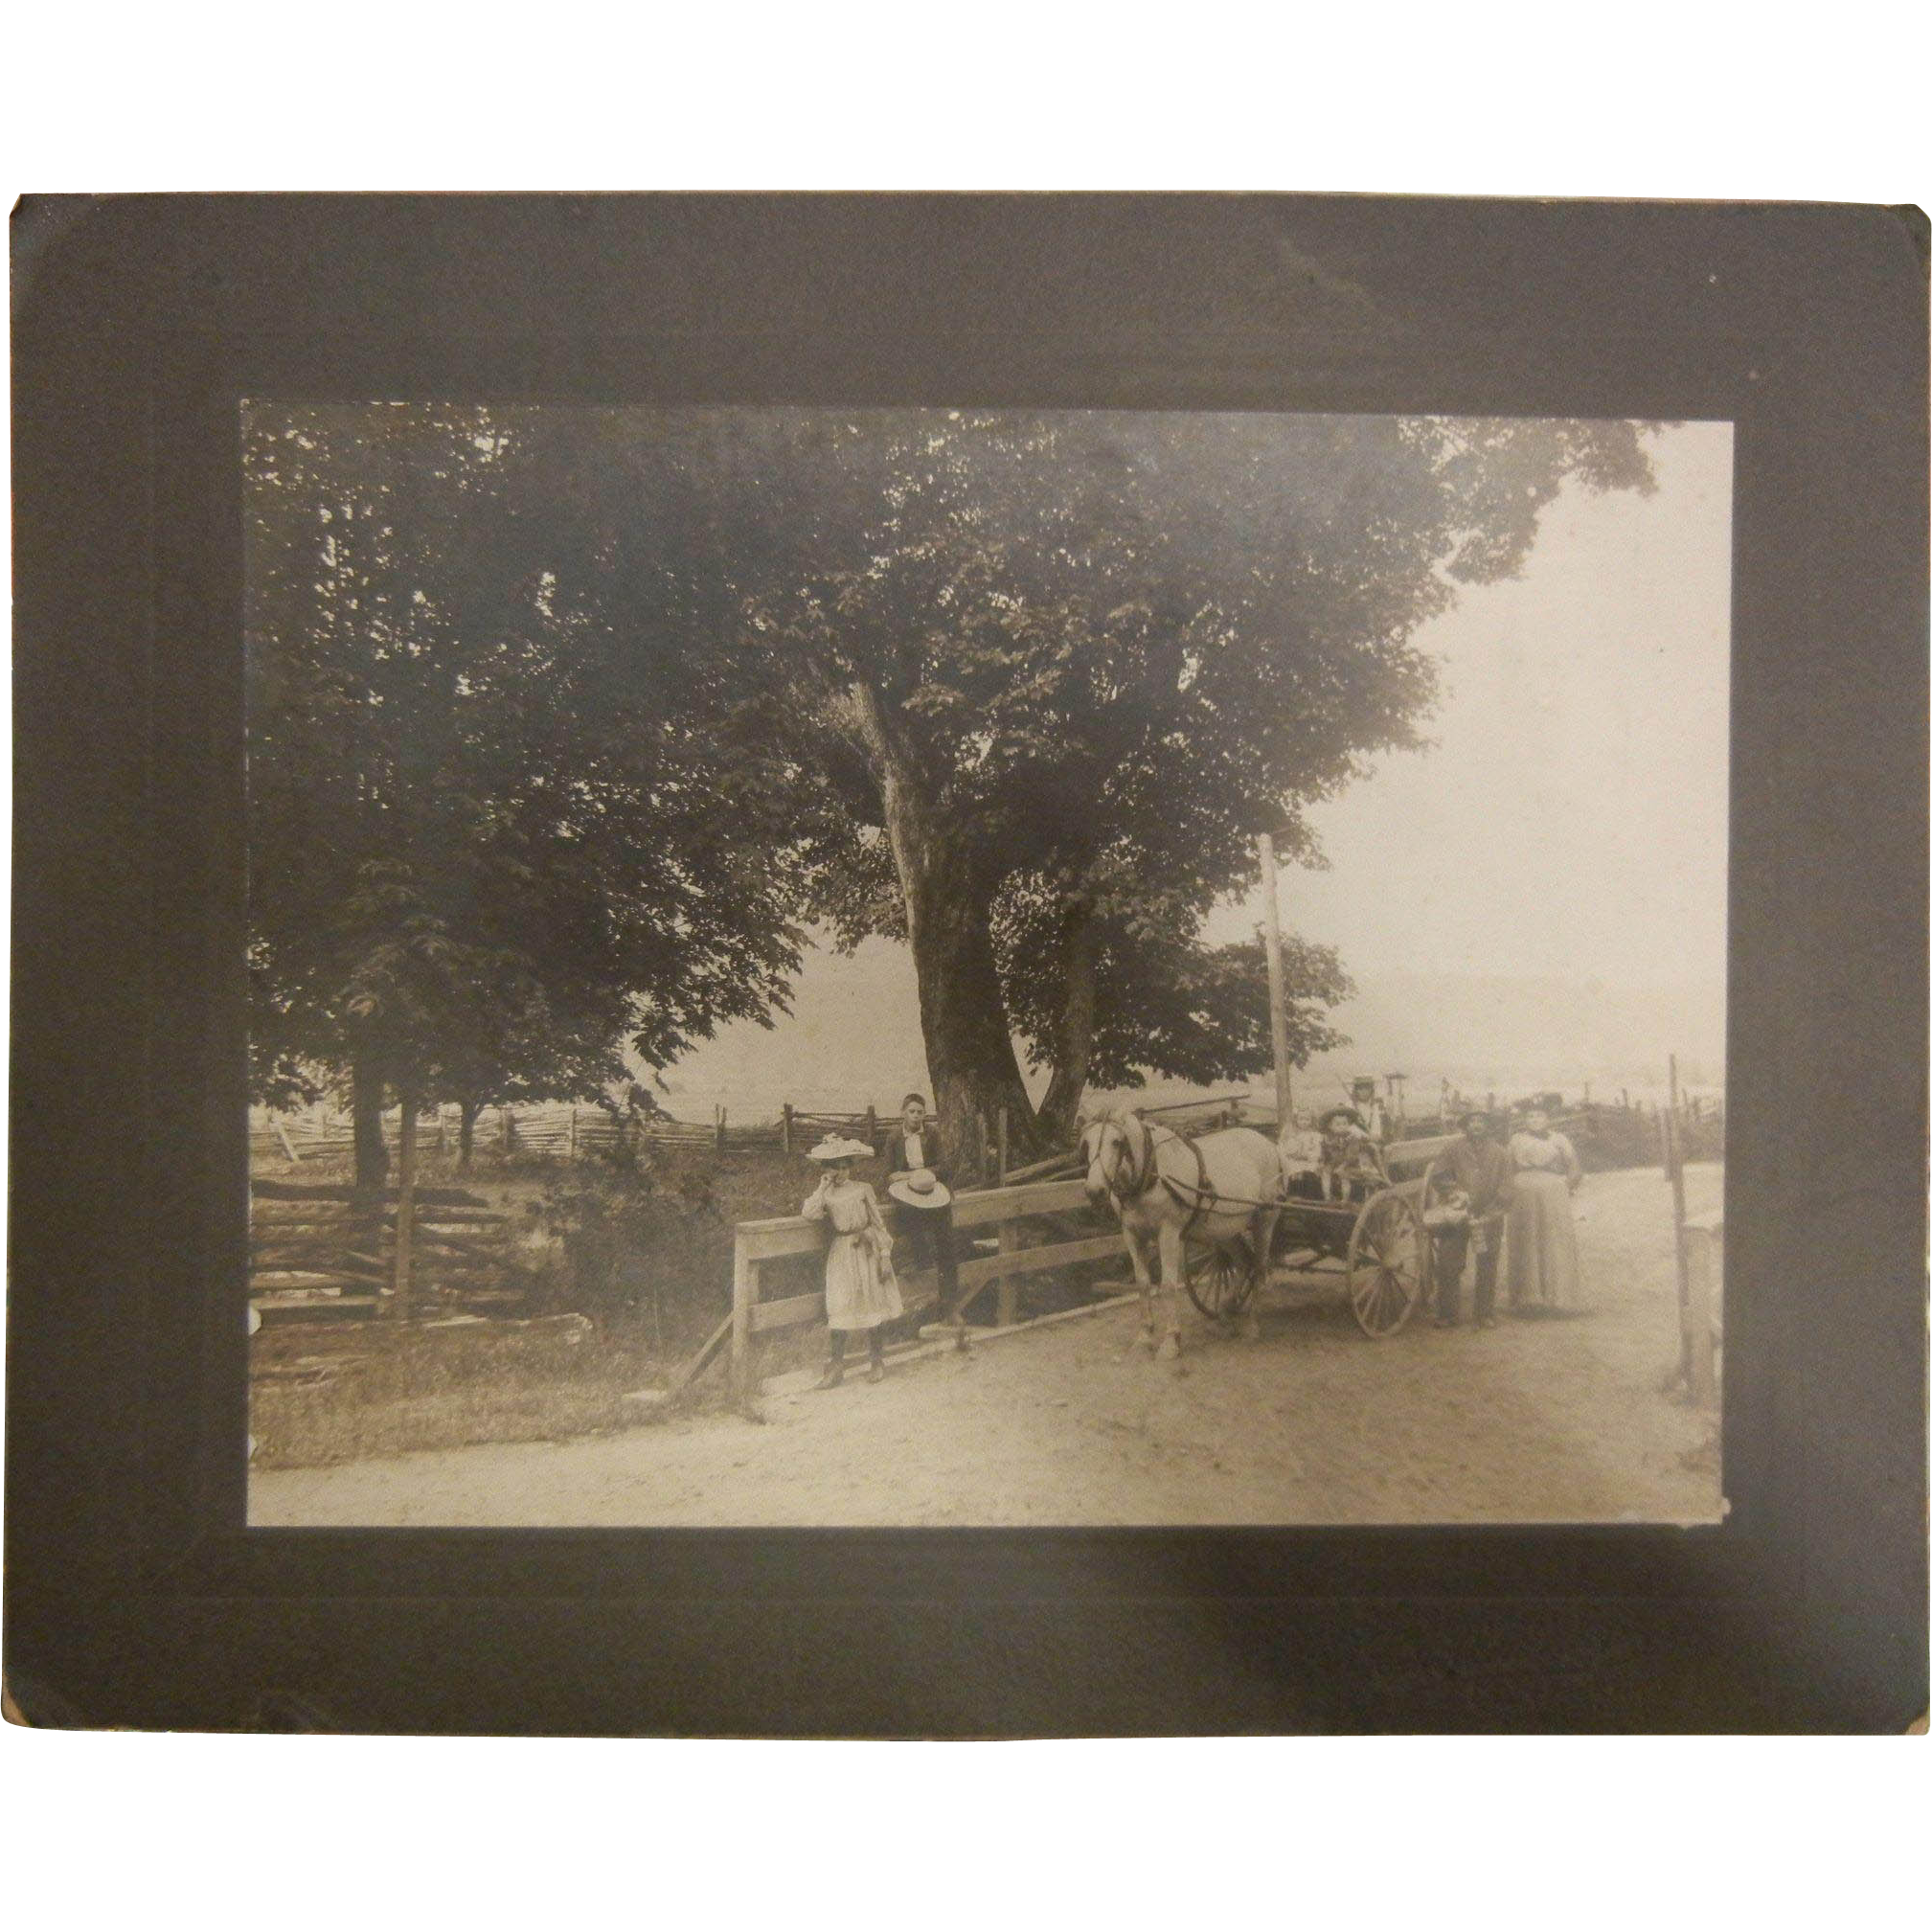 Vintage Original B&W Photograph of Family Horse & Buggy